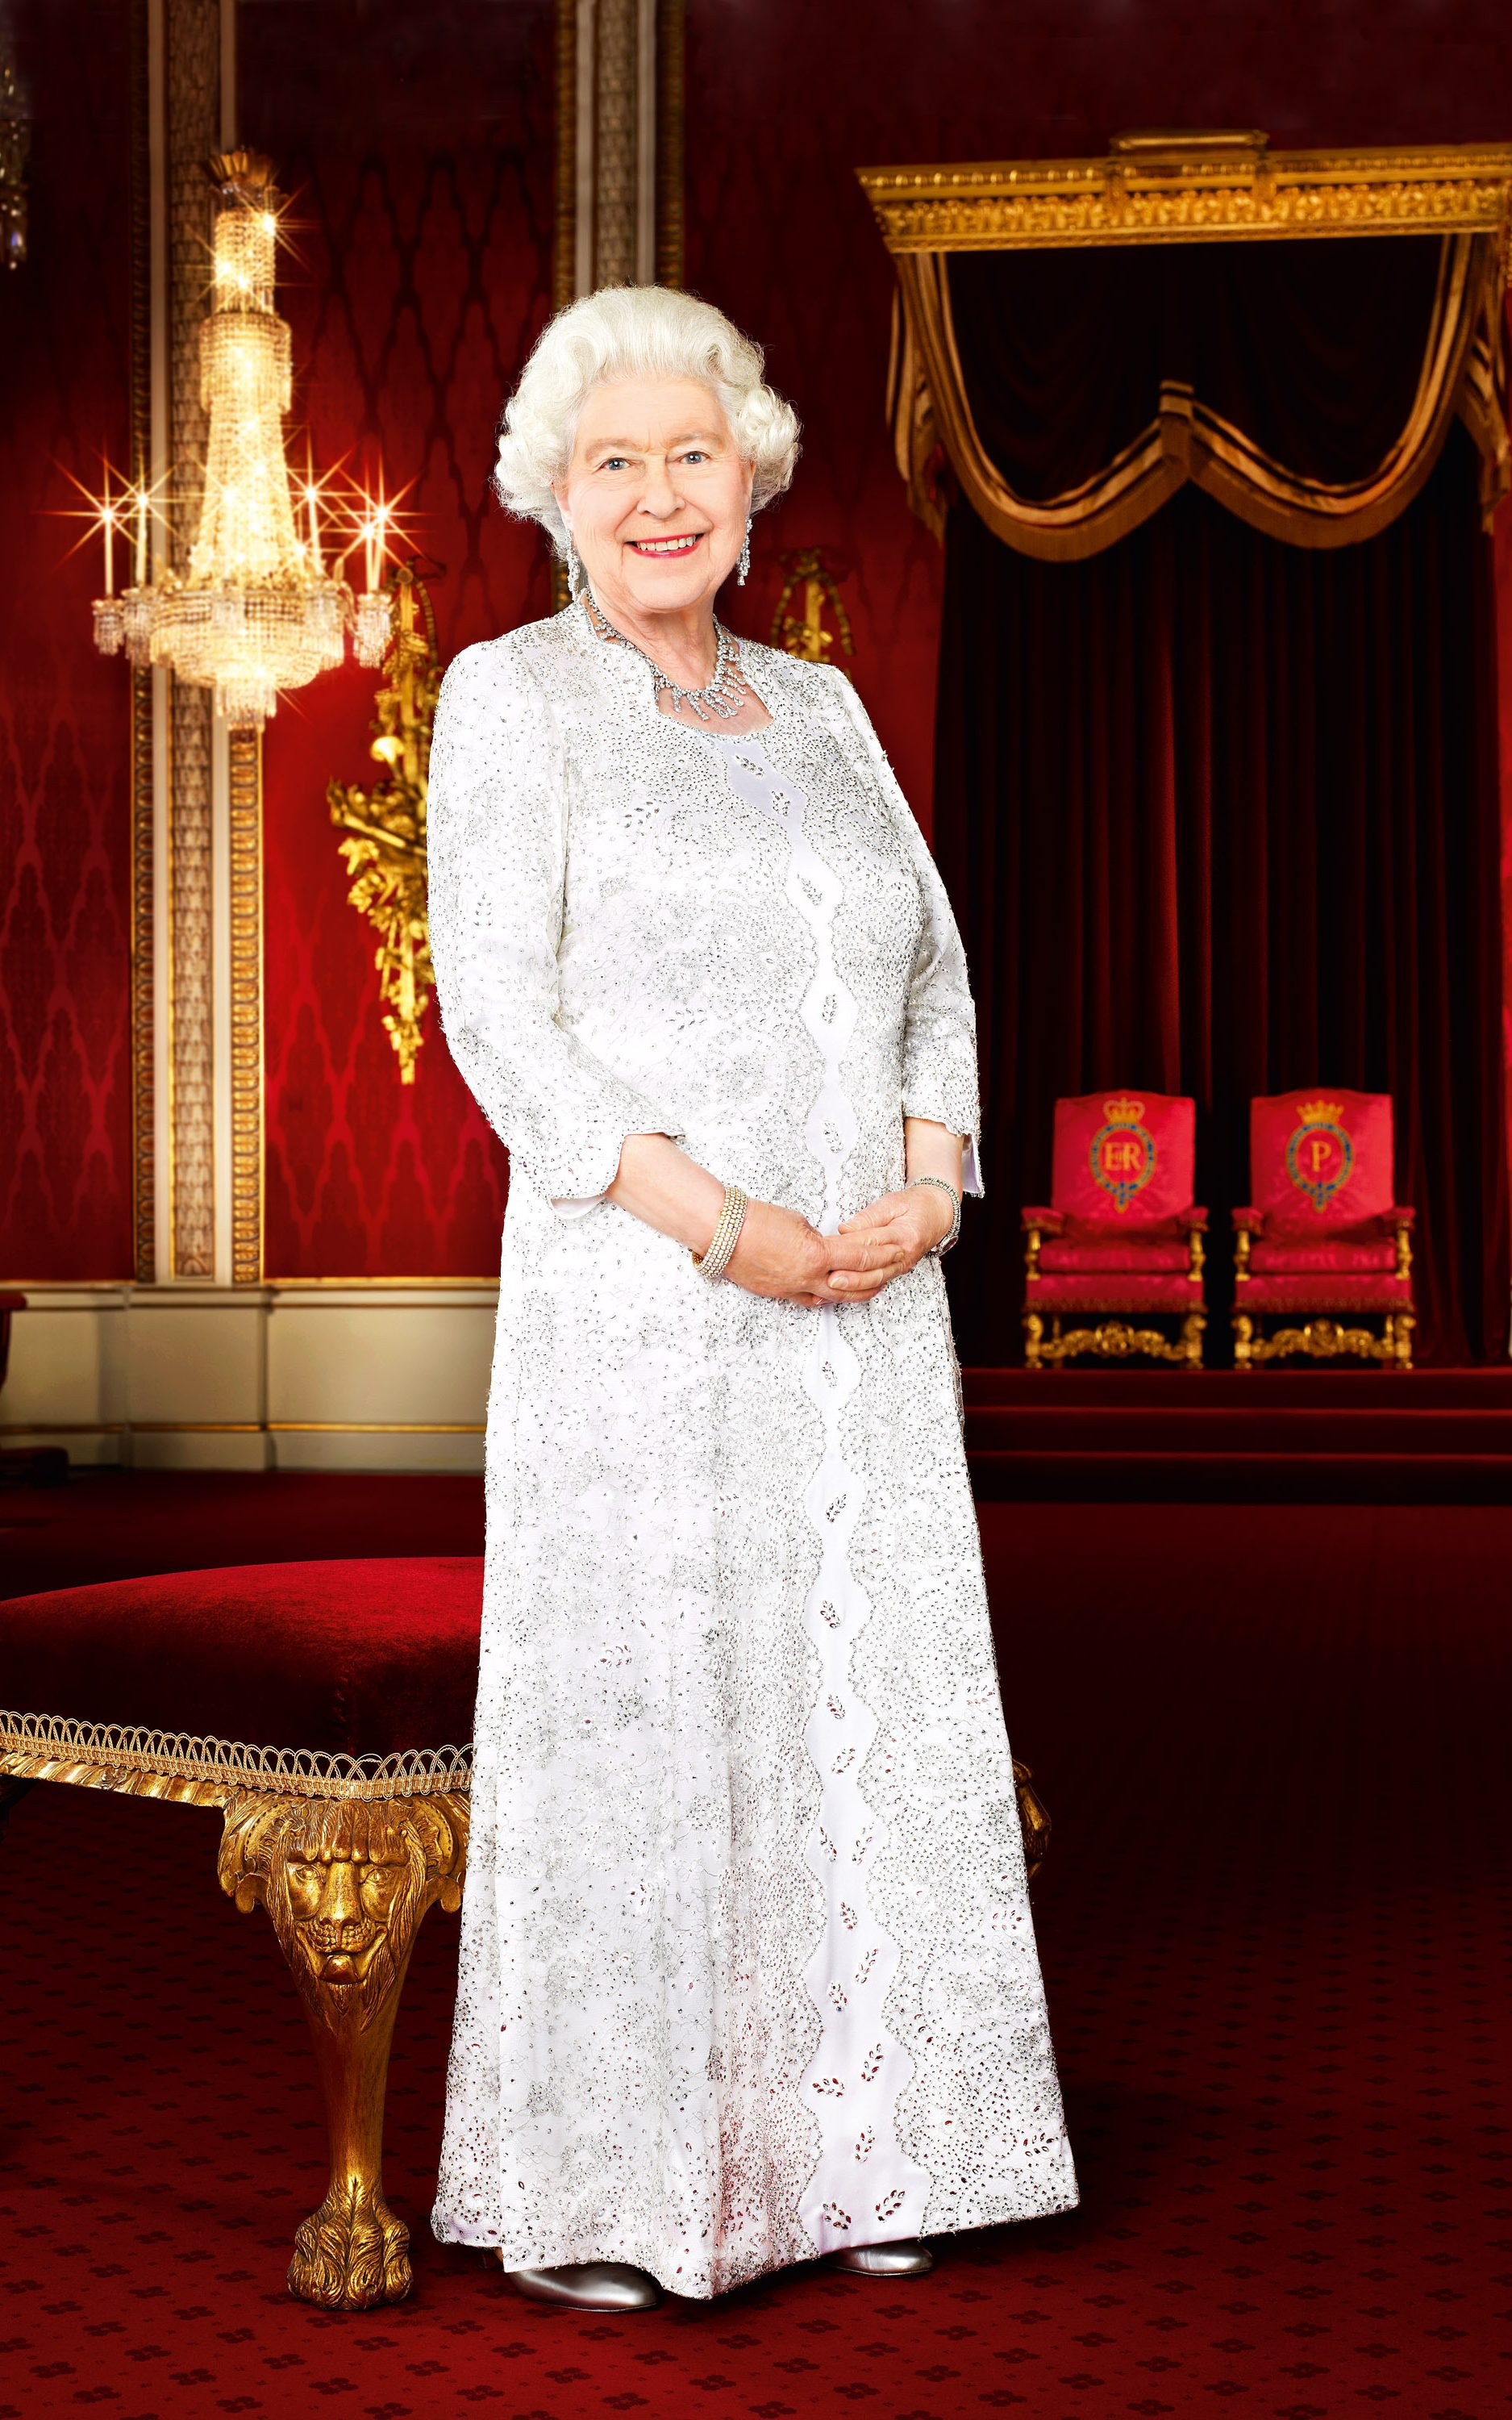 Angela kelly diamond jubilee dress  Is the Queens green look a tribute to Grenfell Tower